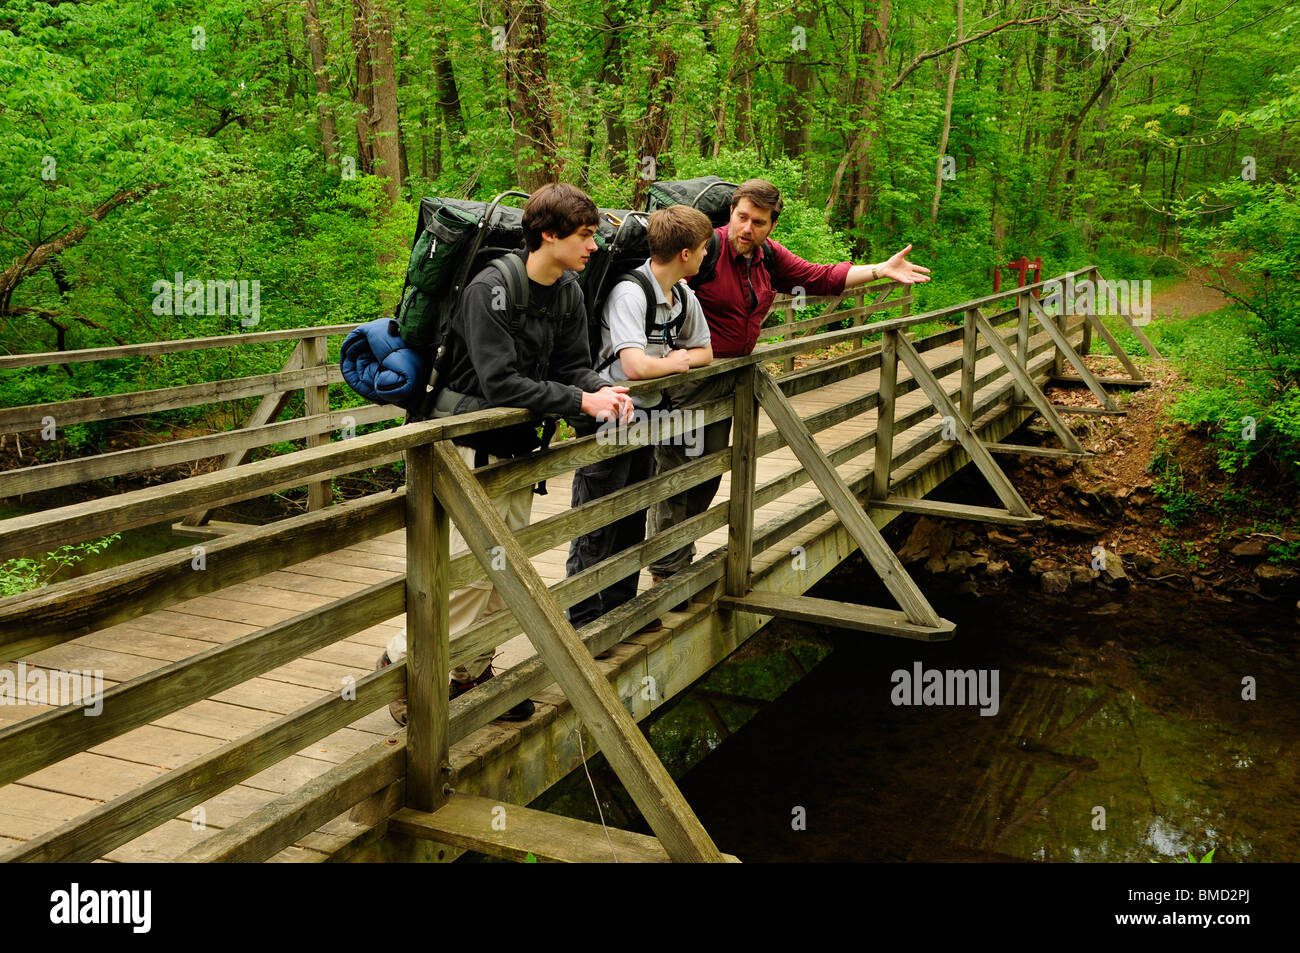 A father and two sons share a moment of camaraderie on a bridge along a hiking trail - Stock Image